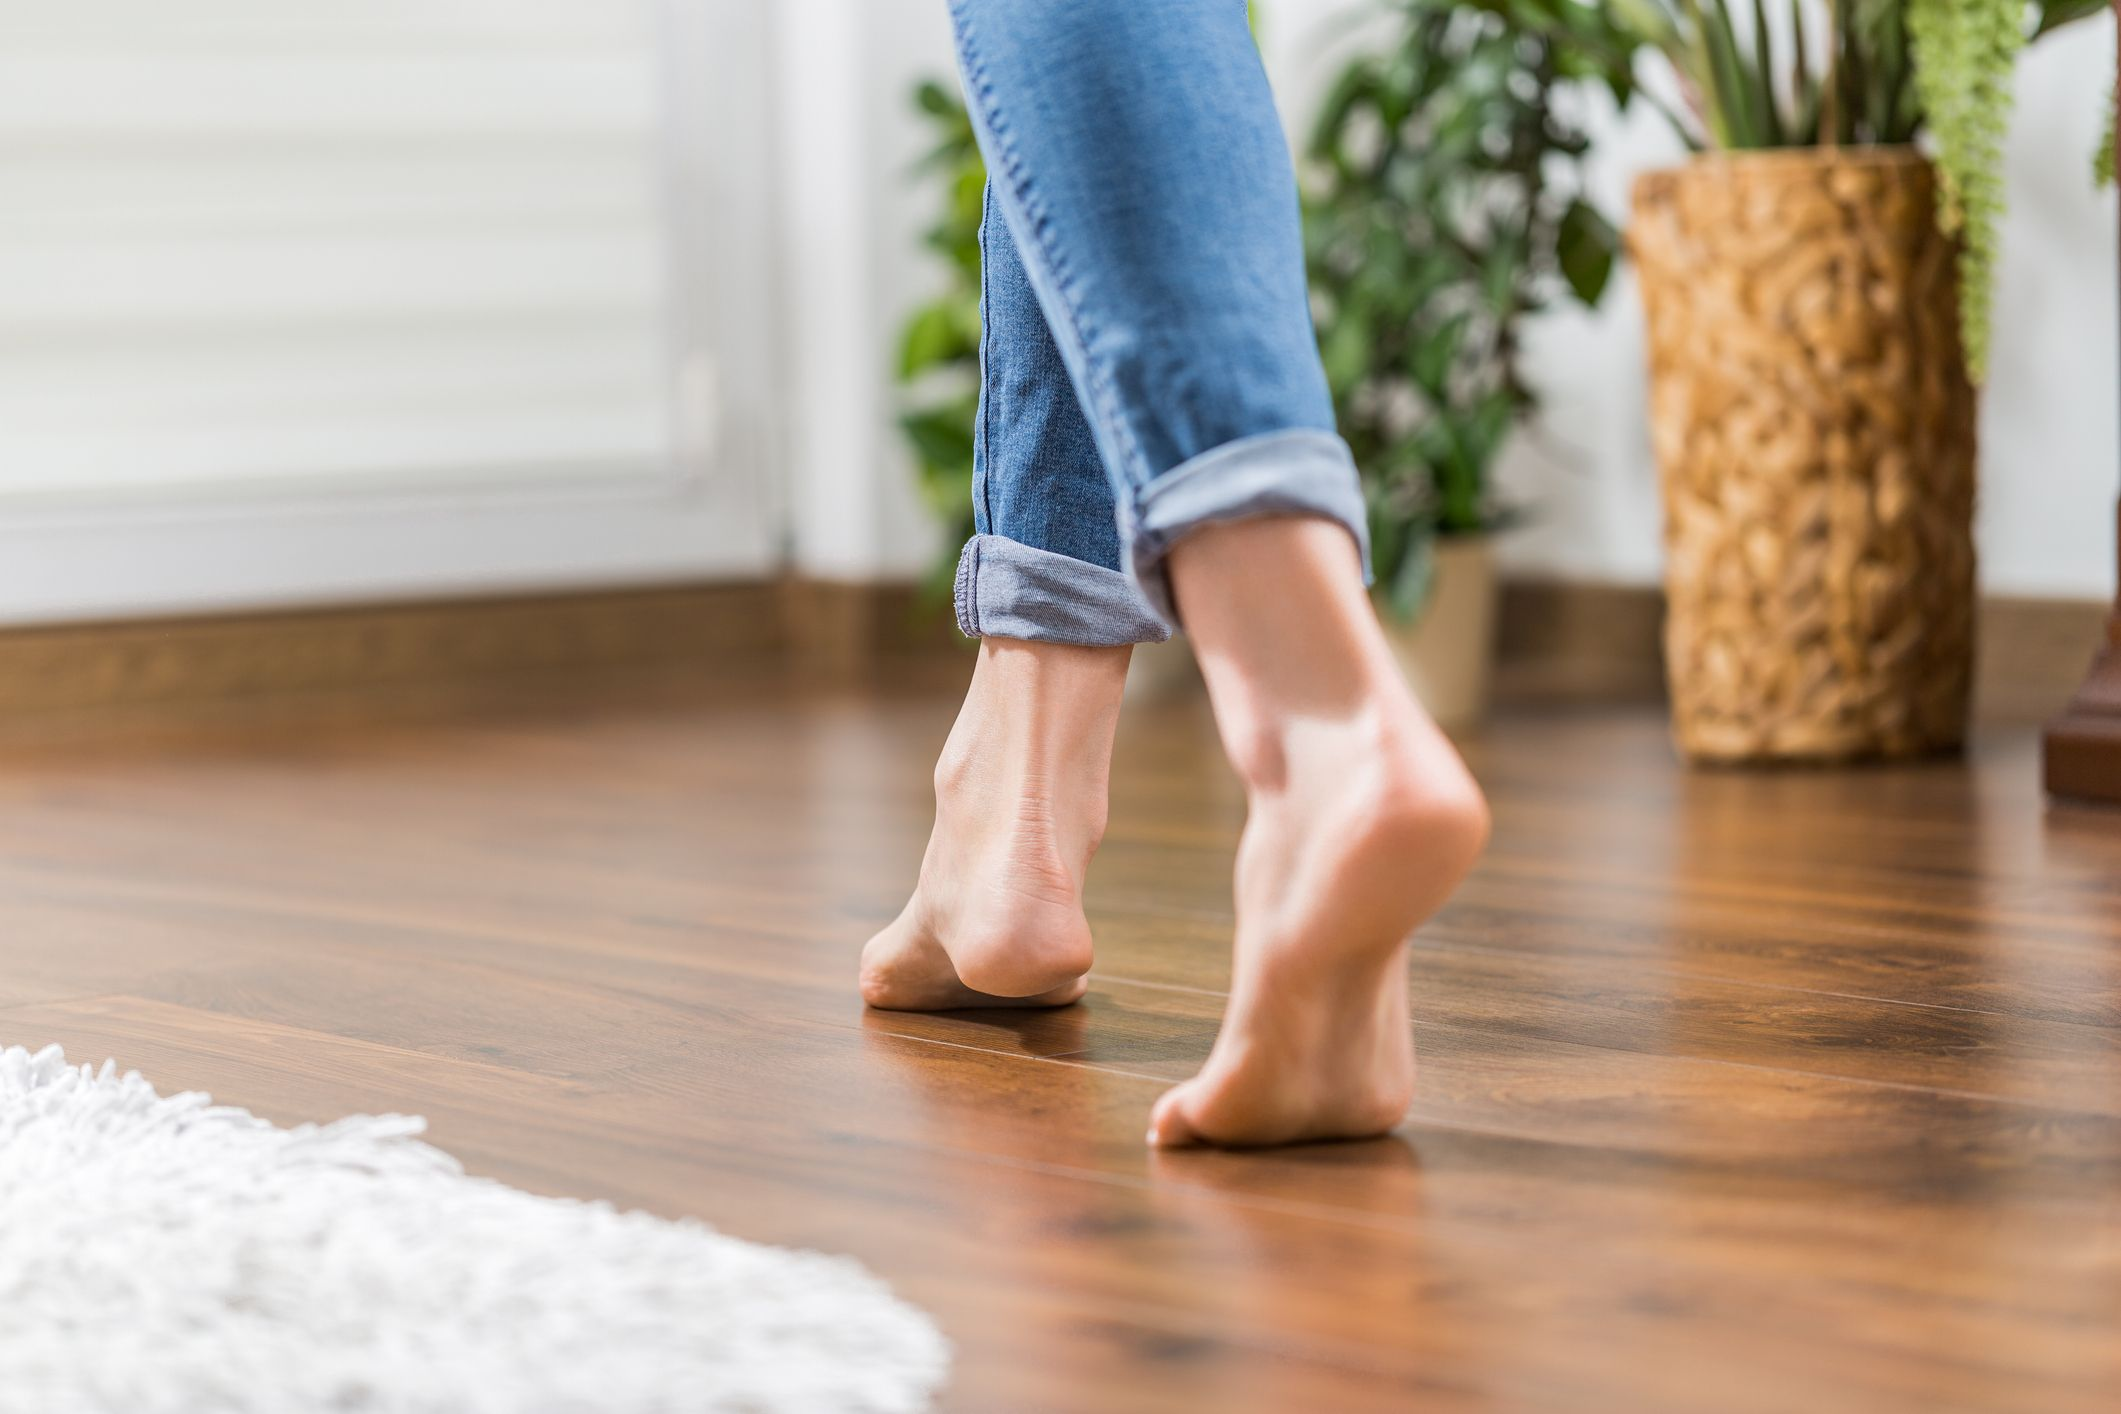 Why Do My Feet Hurt? 15 Causes Of Foot Pain, Heel Pain, Pain In Arch